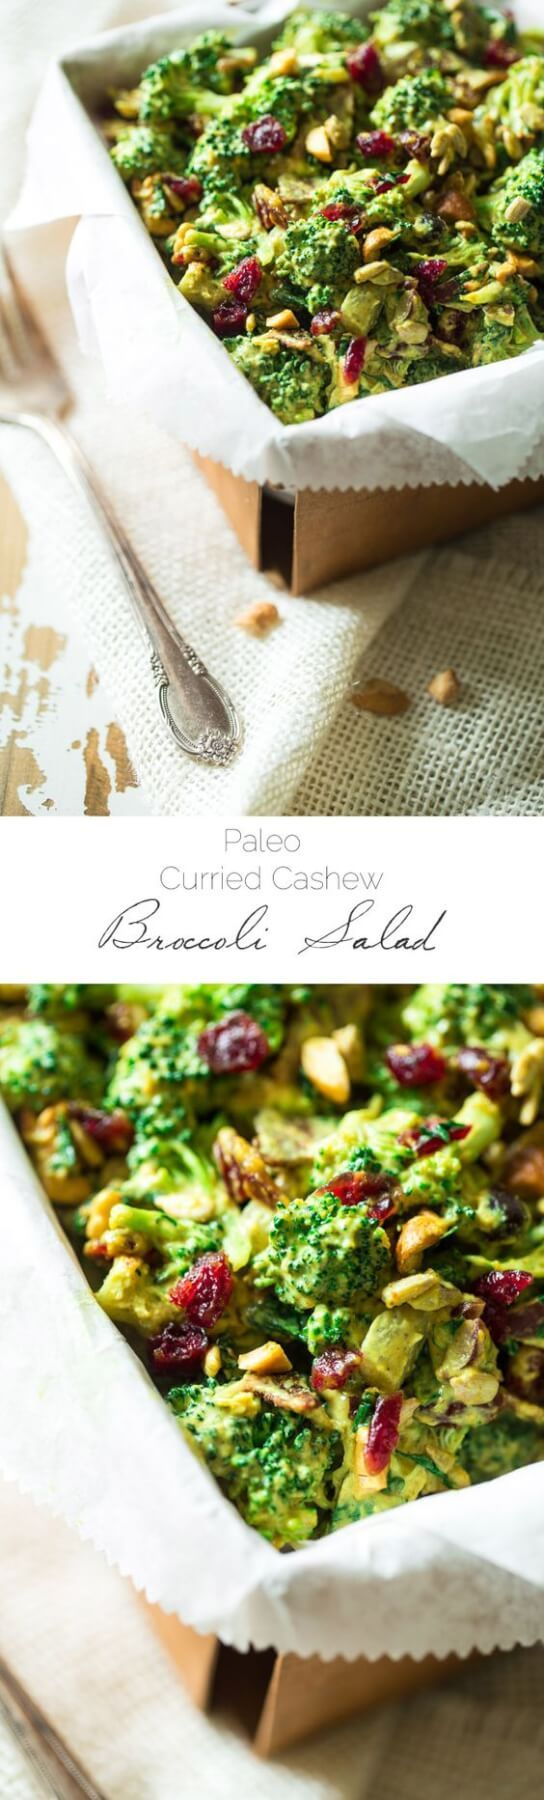 Whole30 Healthy Broccoli Salad Recipe plus 25 more of the most pinned Whole30 recipes